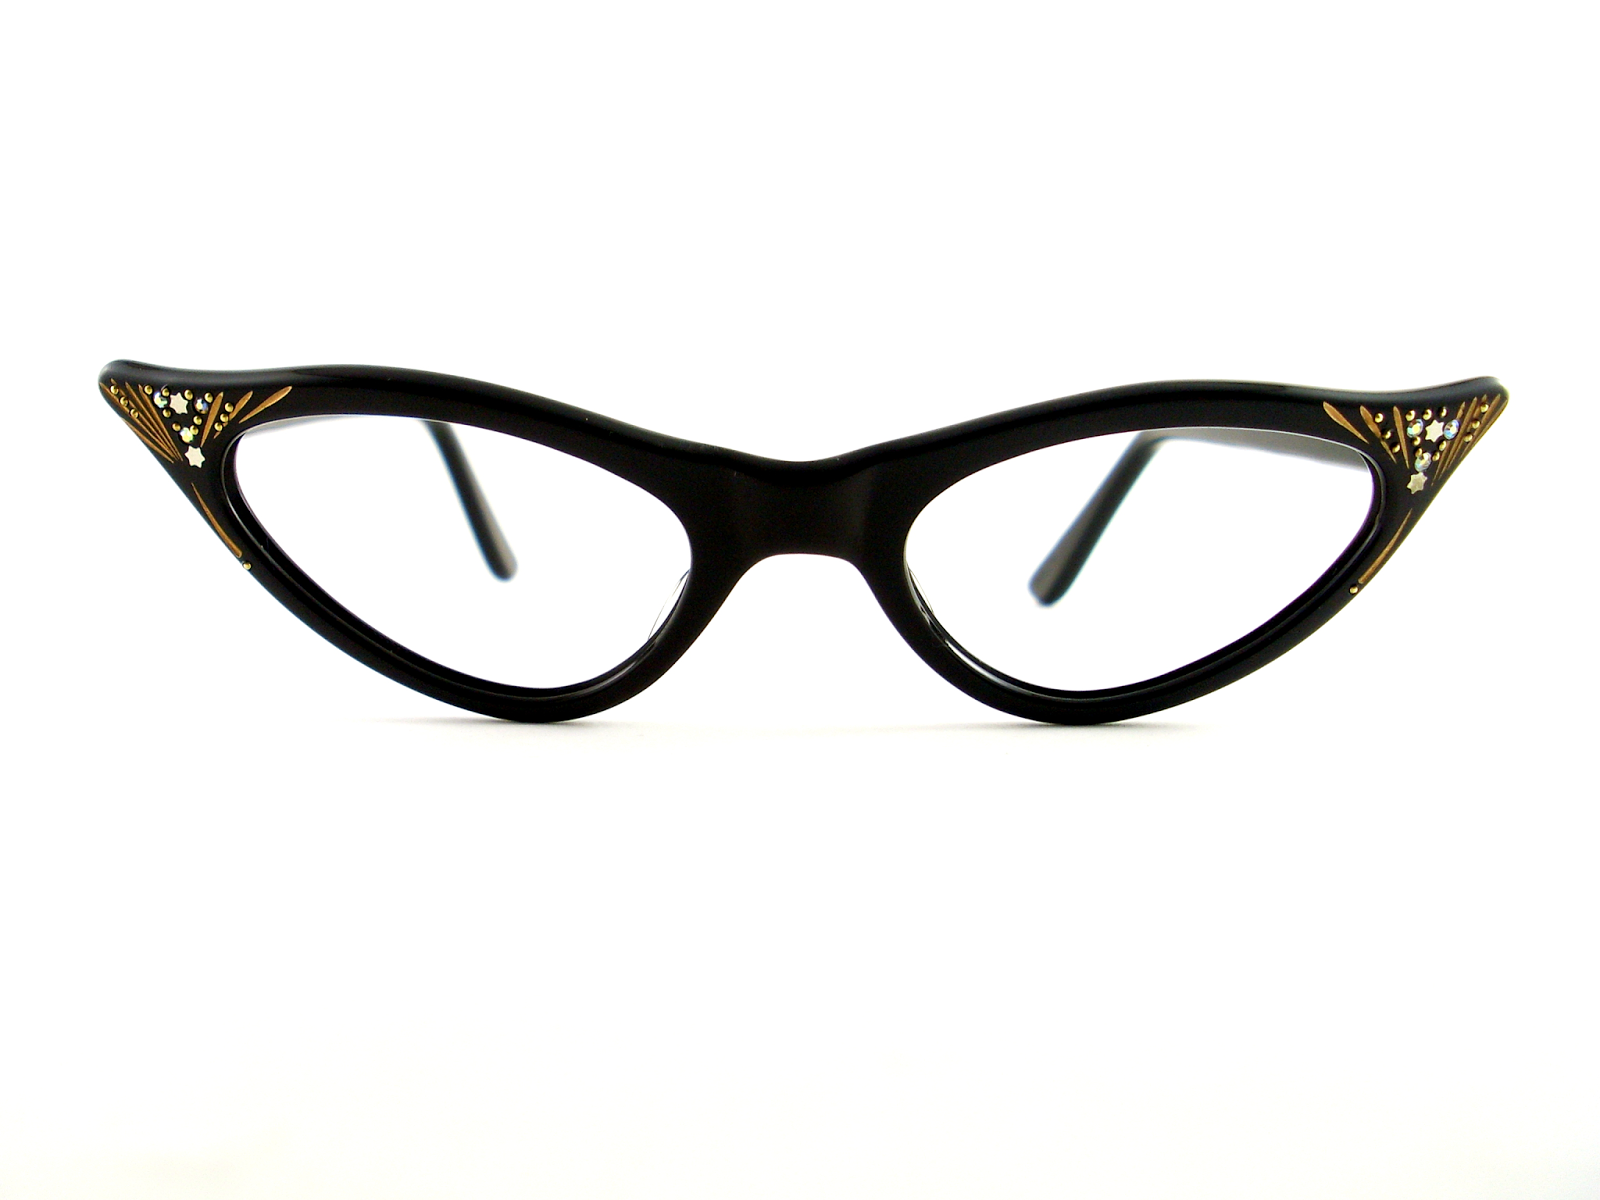 baba143ec0 VINTAGE CAT EYE EYEGLASSES SOLID BLACK GLOSS FRAME. THE WING AREA IS  DECORATED WITH SILVER STAR STUDS